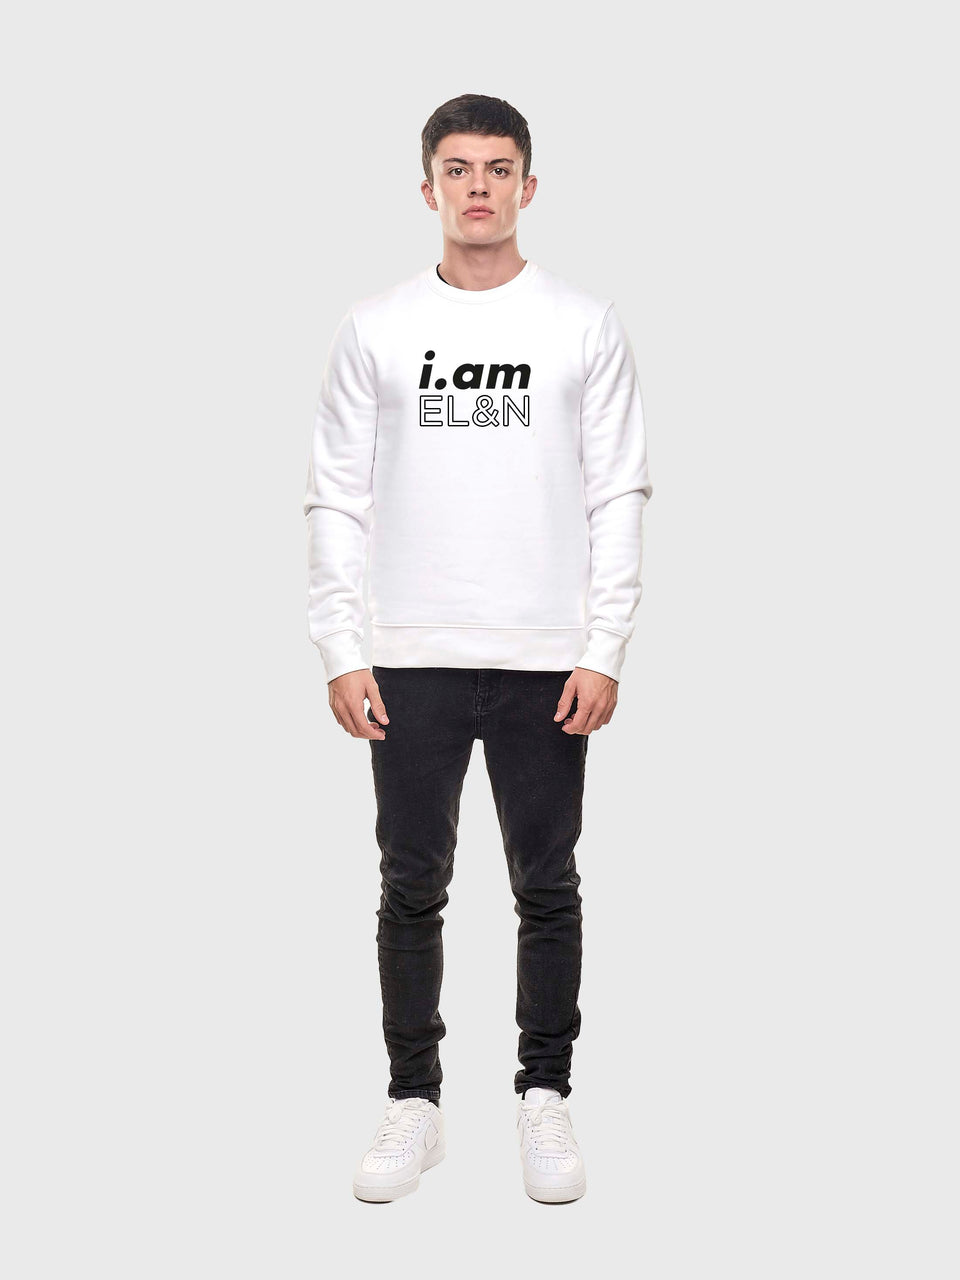 I.am EL&N - Pink / Grey/ White - Unisex sweatshirt